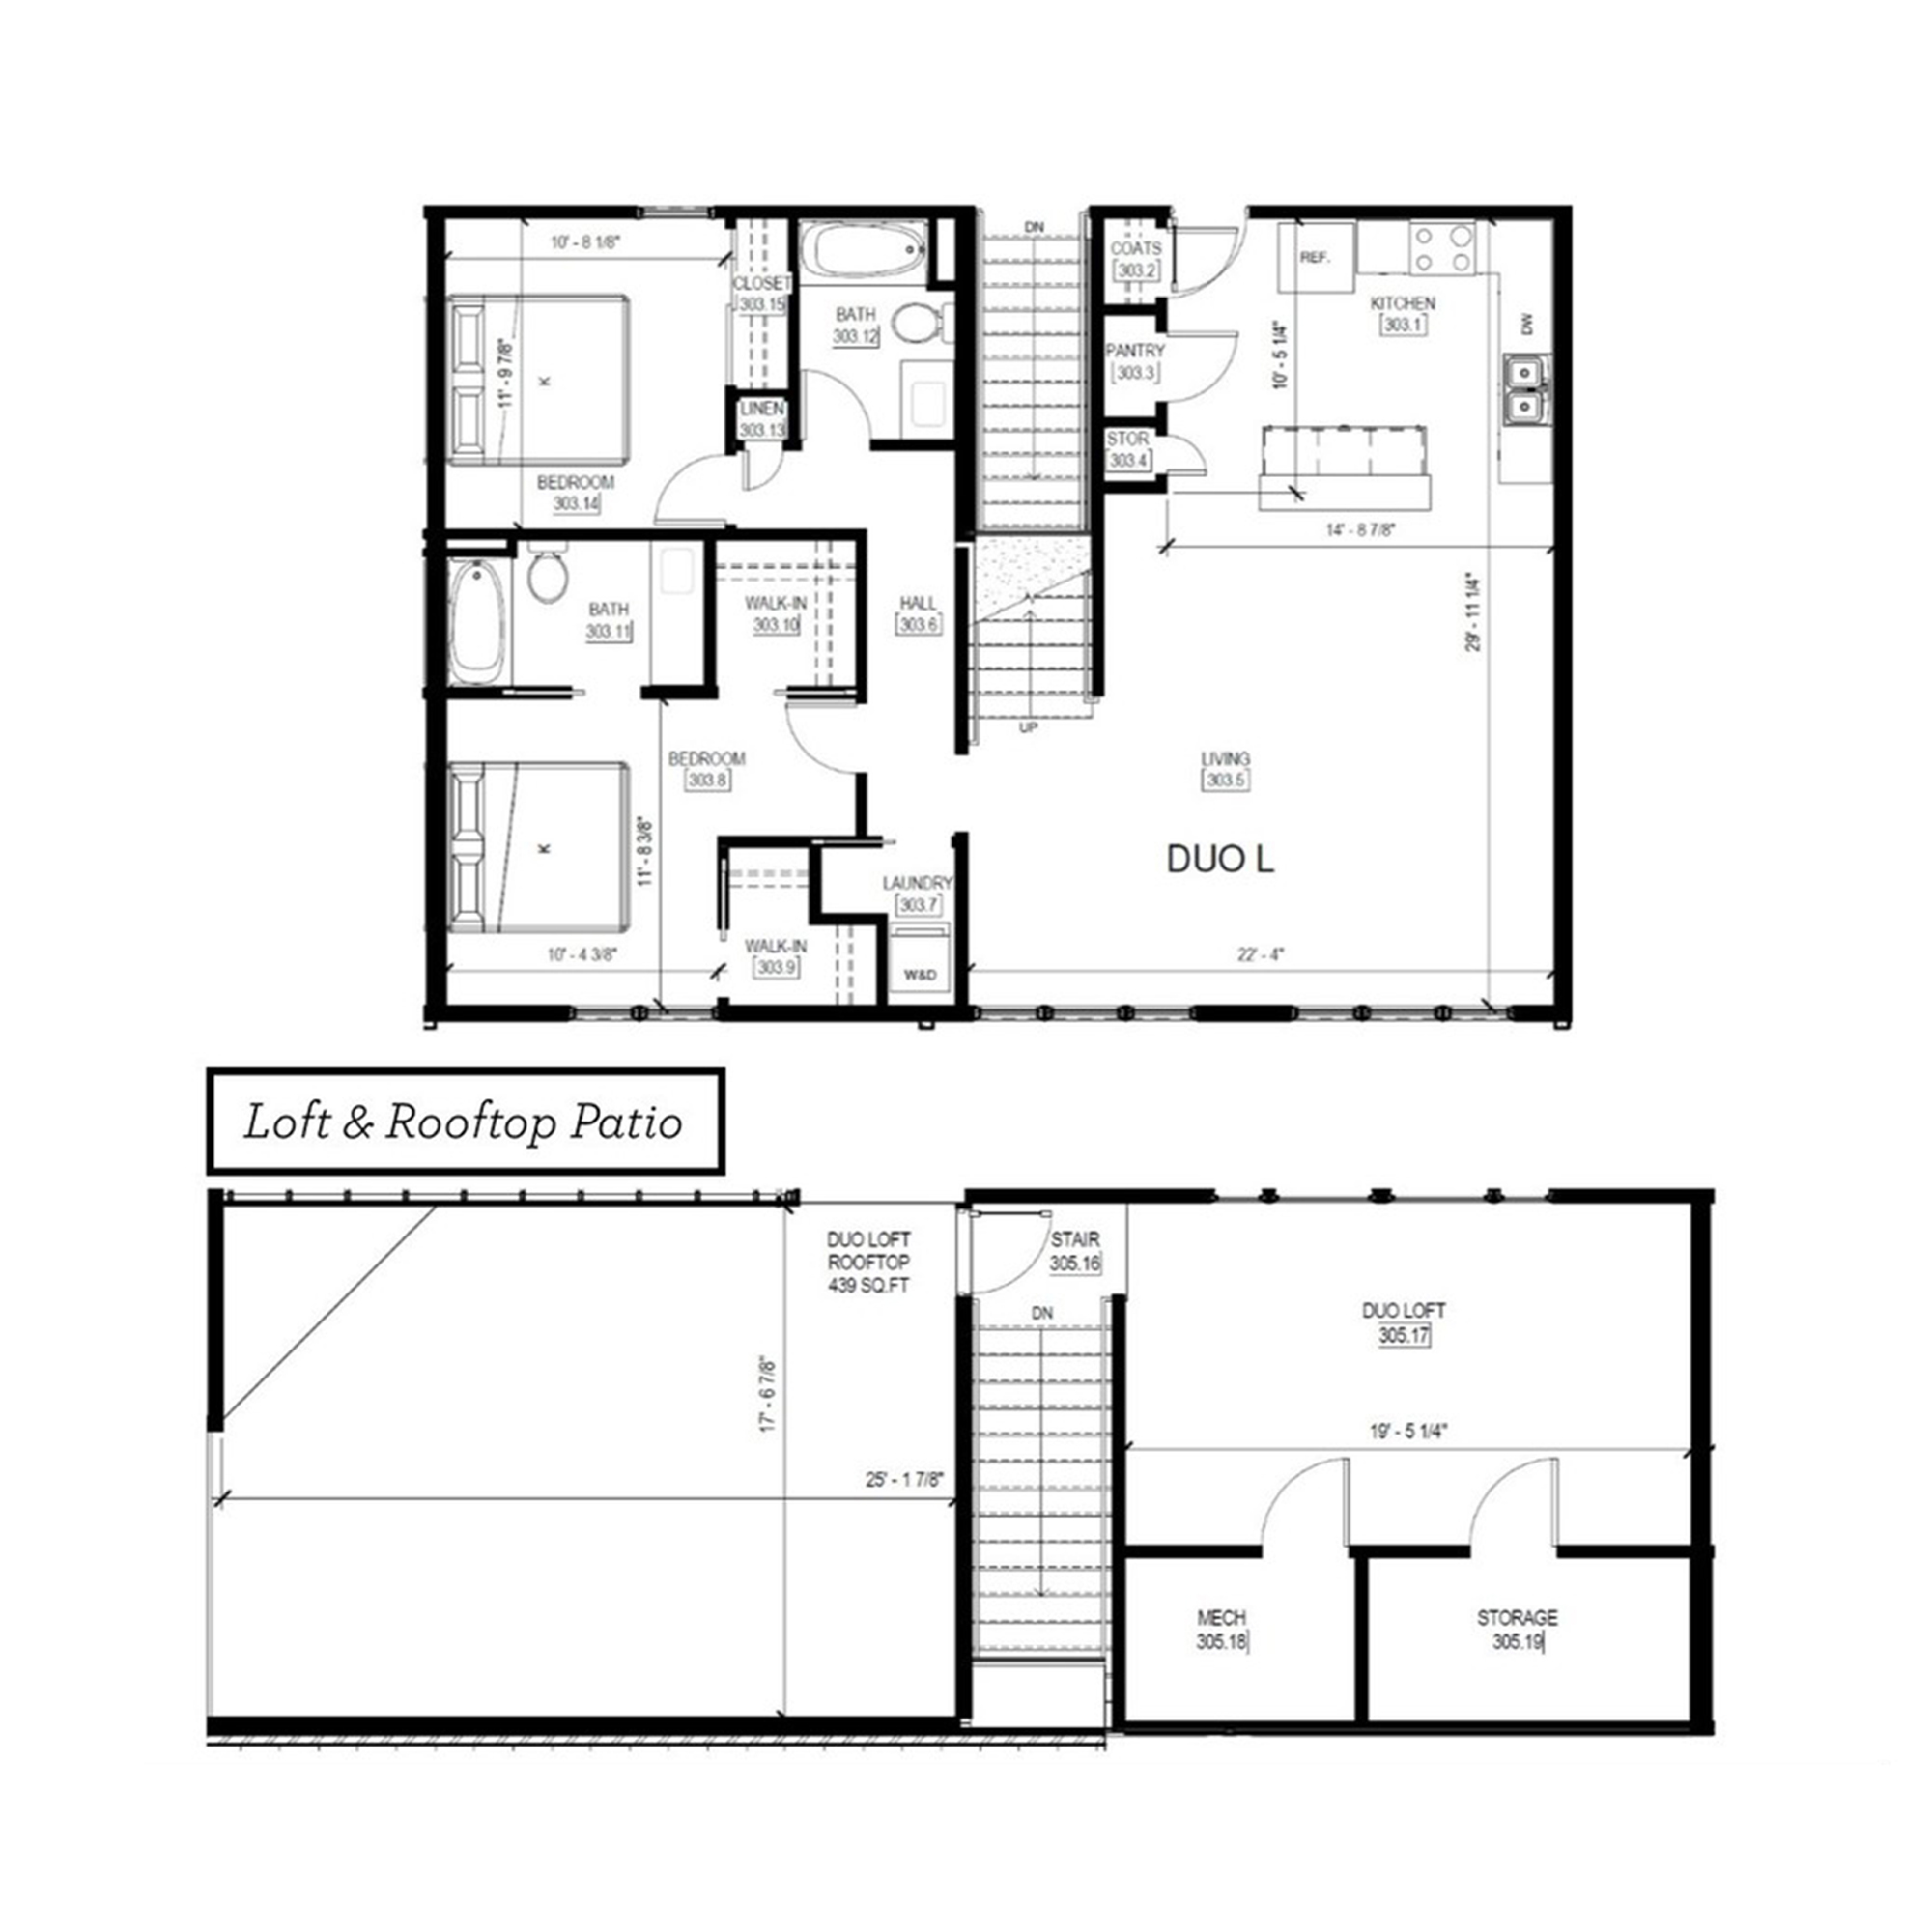 Duo L   2 Bed, 2 Bath, Loft